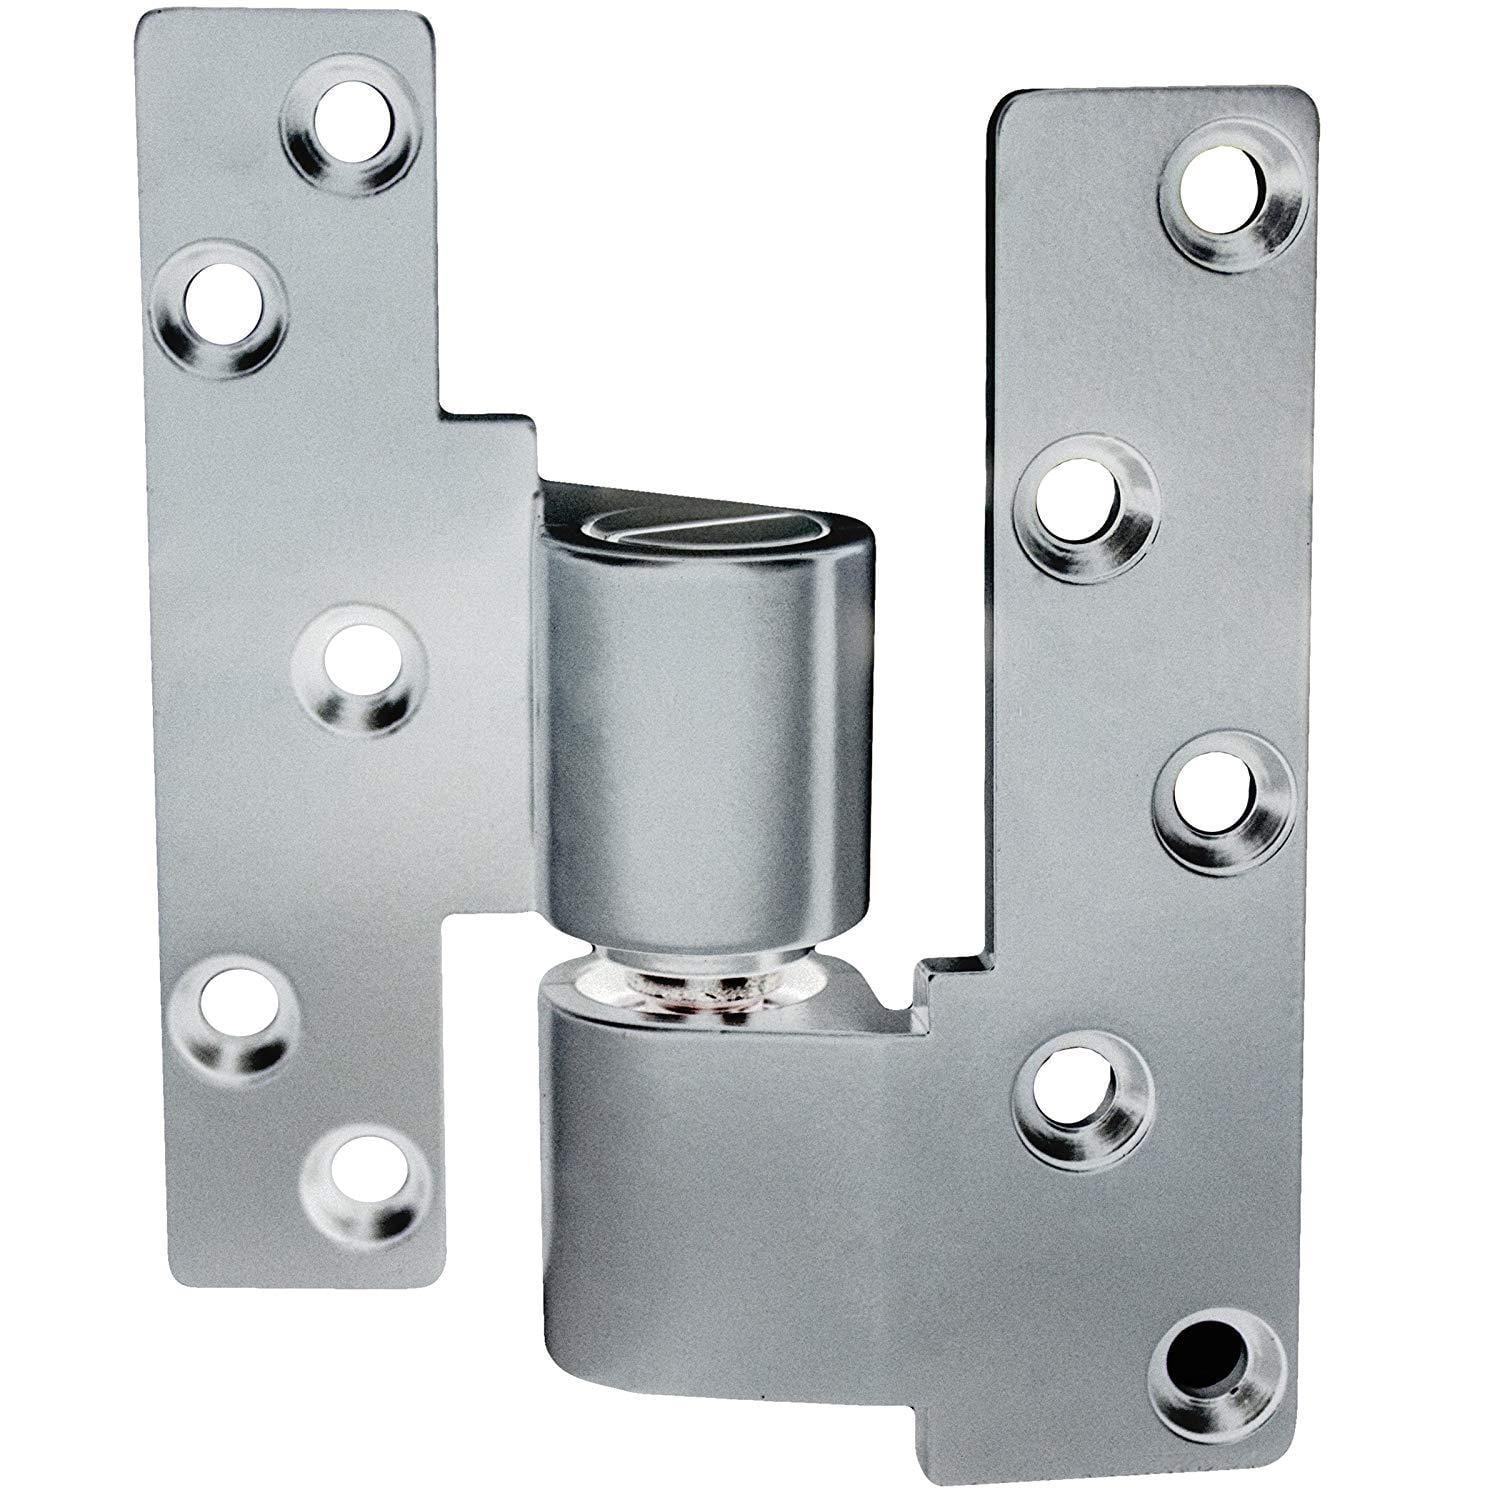 "Intermediate Pivot Door Hinges - Offset for Metal Frame Doors - 1/8"" Recessed or Face Frame Applications - 1 3/4"" Thick Doors"